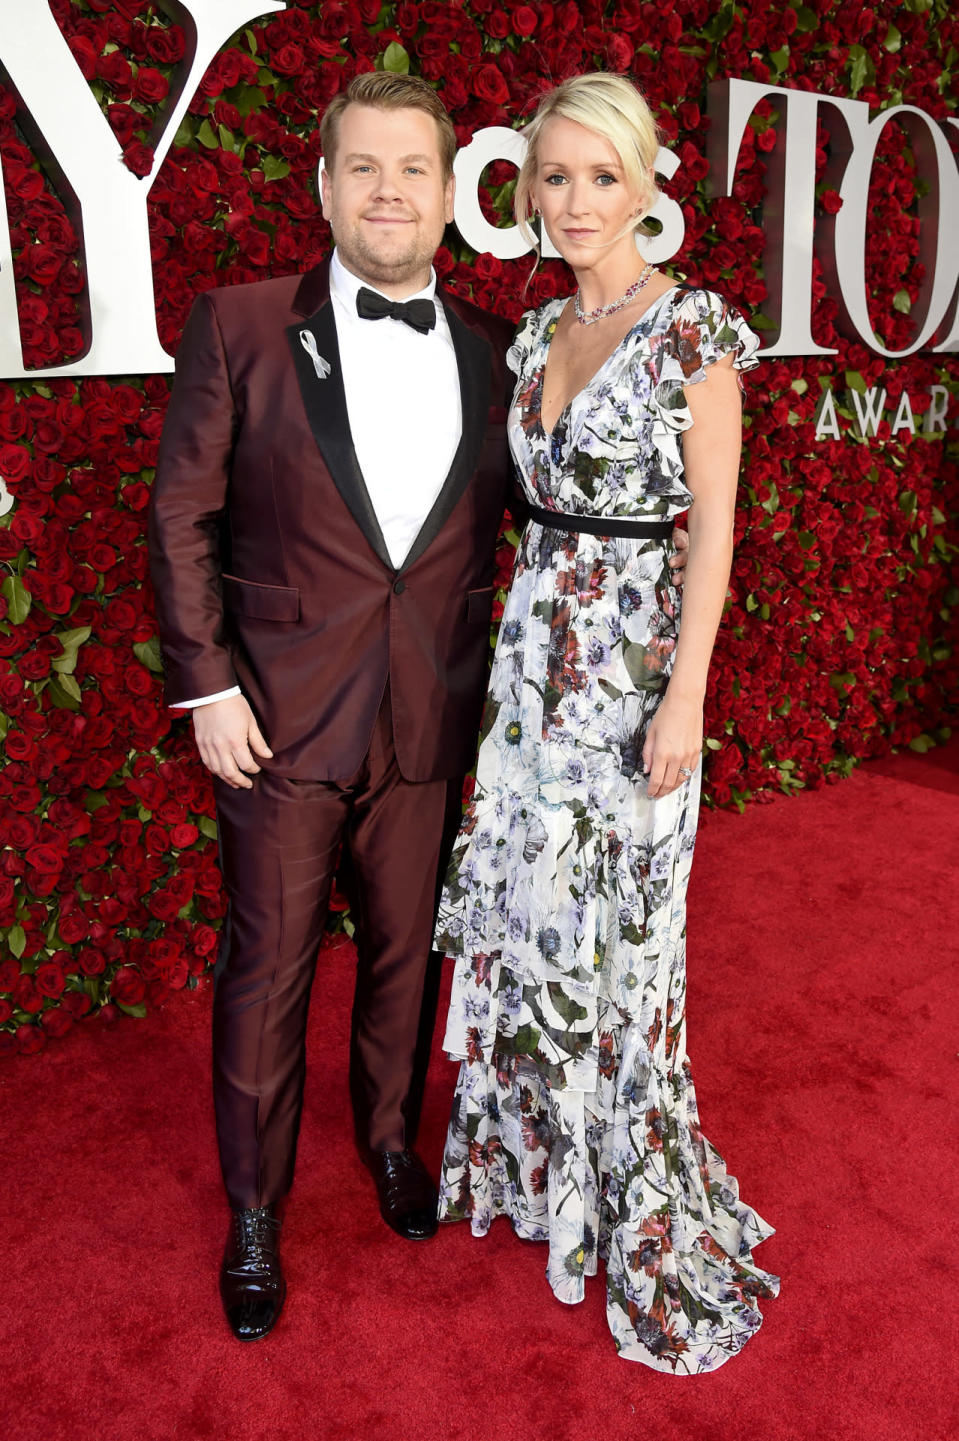 "<p>James Corden, the show's host, walked the red carpet in an ox blood tuxedo and a black bowtie. ""Everything I'm wearing tonight [Anna Wintour] picked out,"" he said. In fact, he gave the <i>Vogue</i> editor in chief credit for revamping the event. ""She's incredibly influential with this whole event. She also believes — as I do — that this is a show that we absolutely should be celebrating in every way possible."" <i>(Photo: Getty Images)</i></p>"